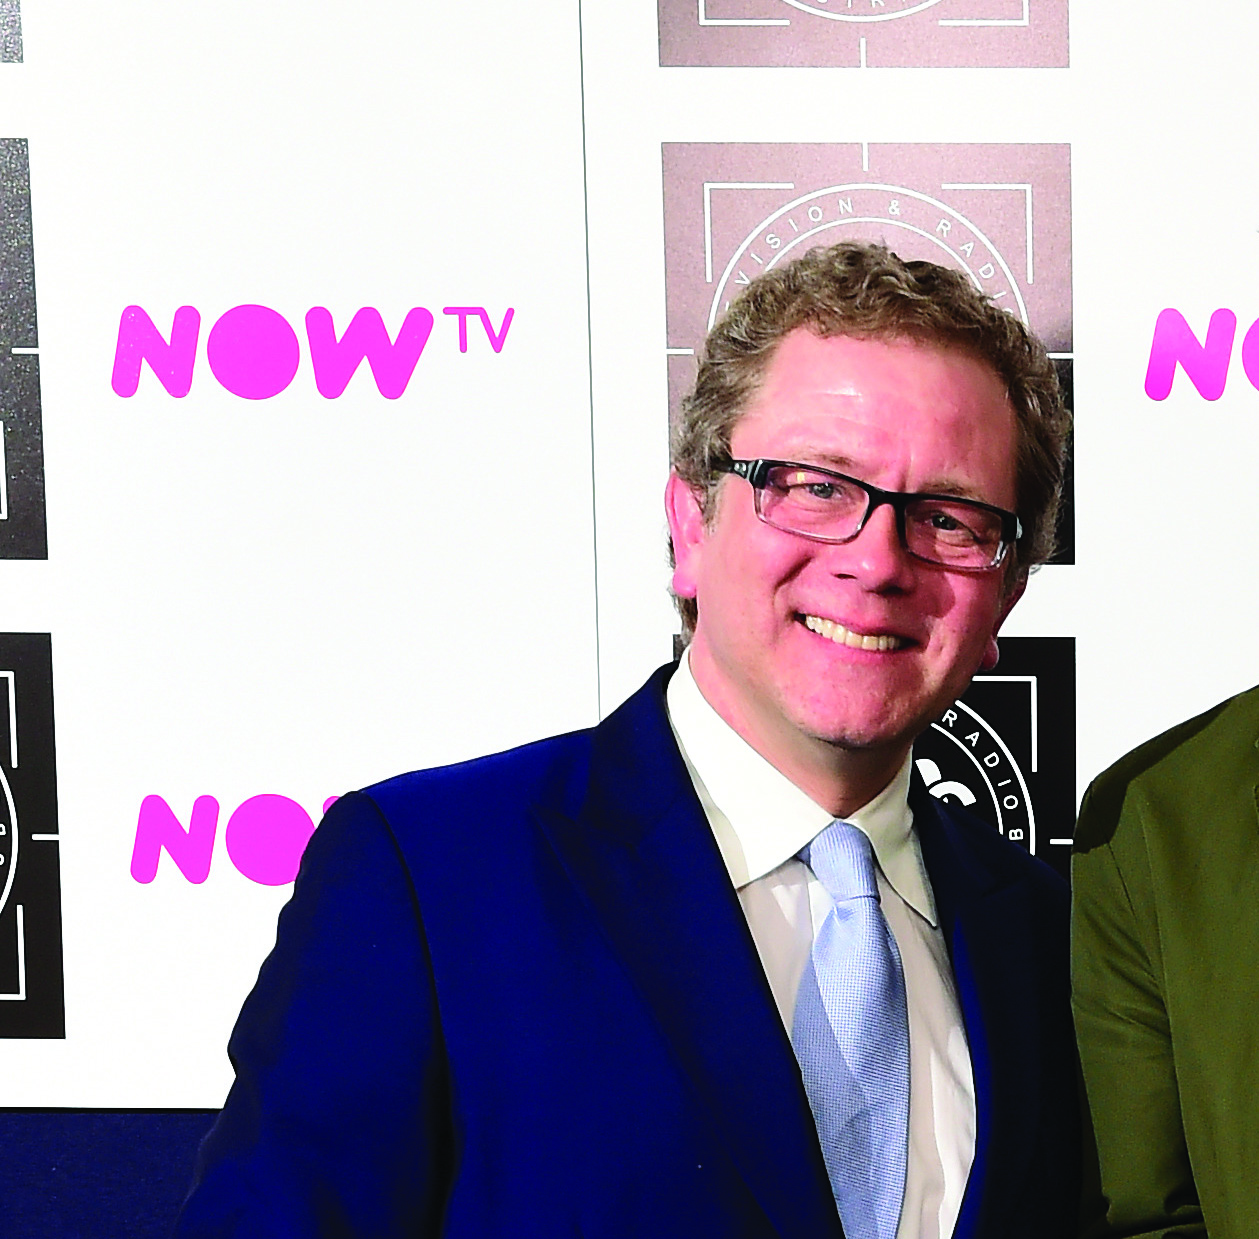 Jon Culshaw presents the Daytime Programme Sponsored by the Warranty Group award to winners Pointless in the press room at the 2016 Television and Radio Industries Club Awards, Grosvenor House, Park Lane, London. PRESS ASSOCIATION Photo. Picture date: Tuesday March 8, 2016. Photo credit should read: Ian West/PA Wire